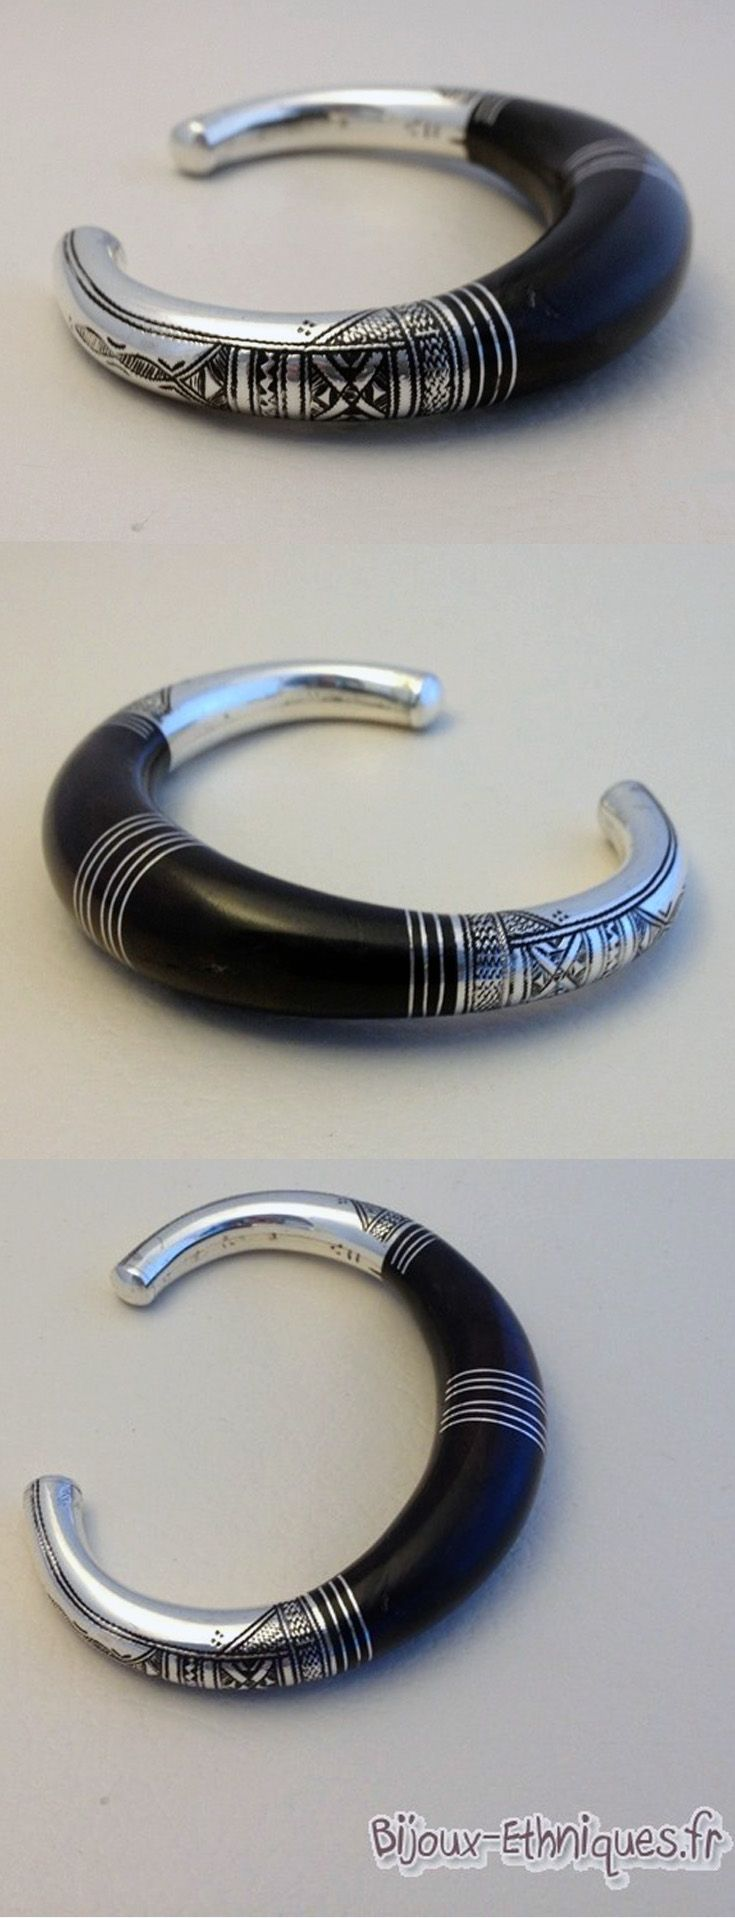 TRADITIONAL ART TOUAREG bracelet in silver 925 and ebony wood